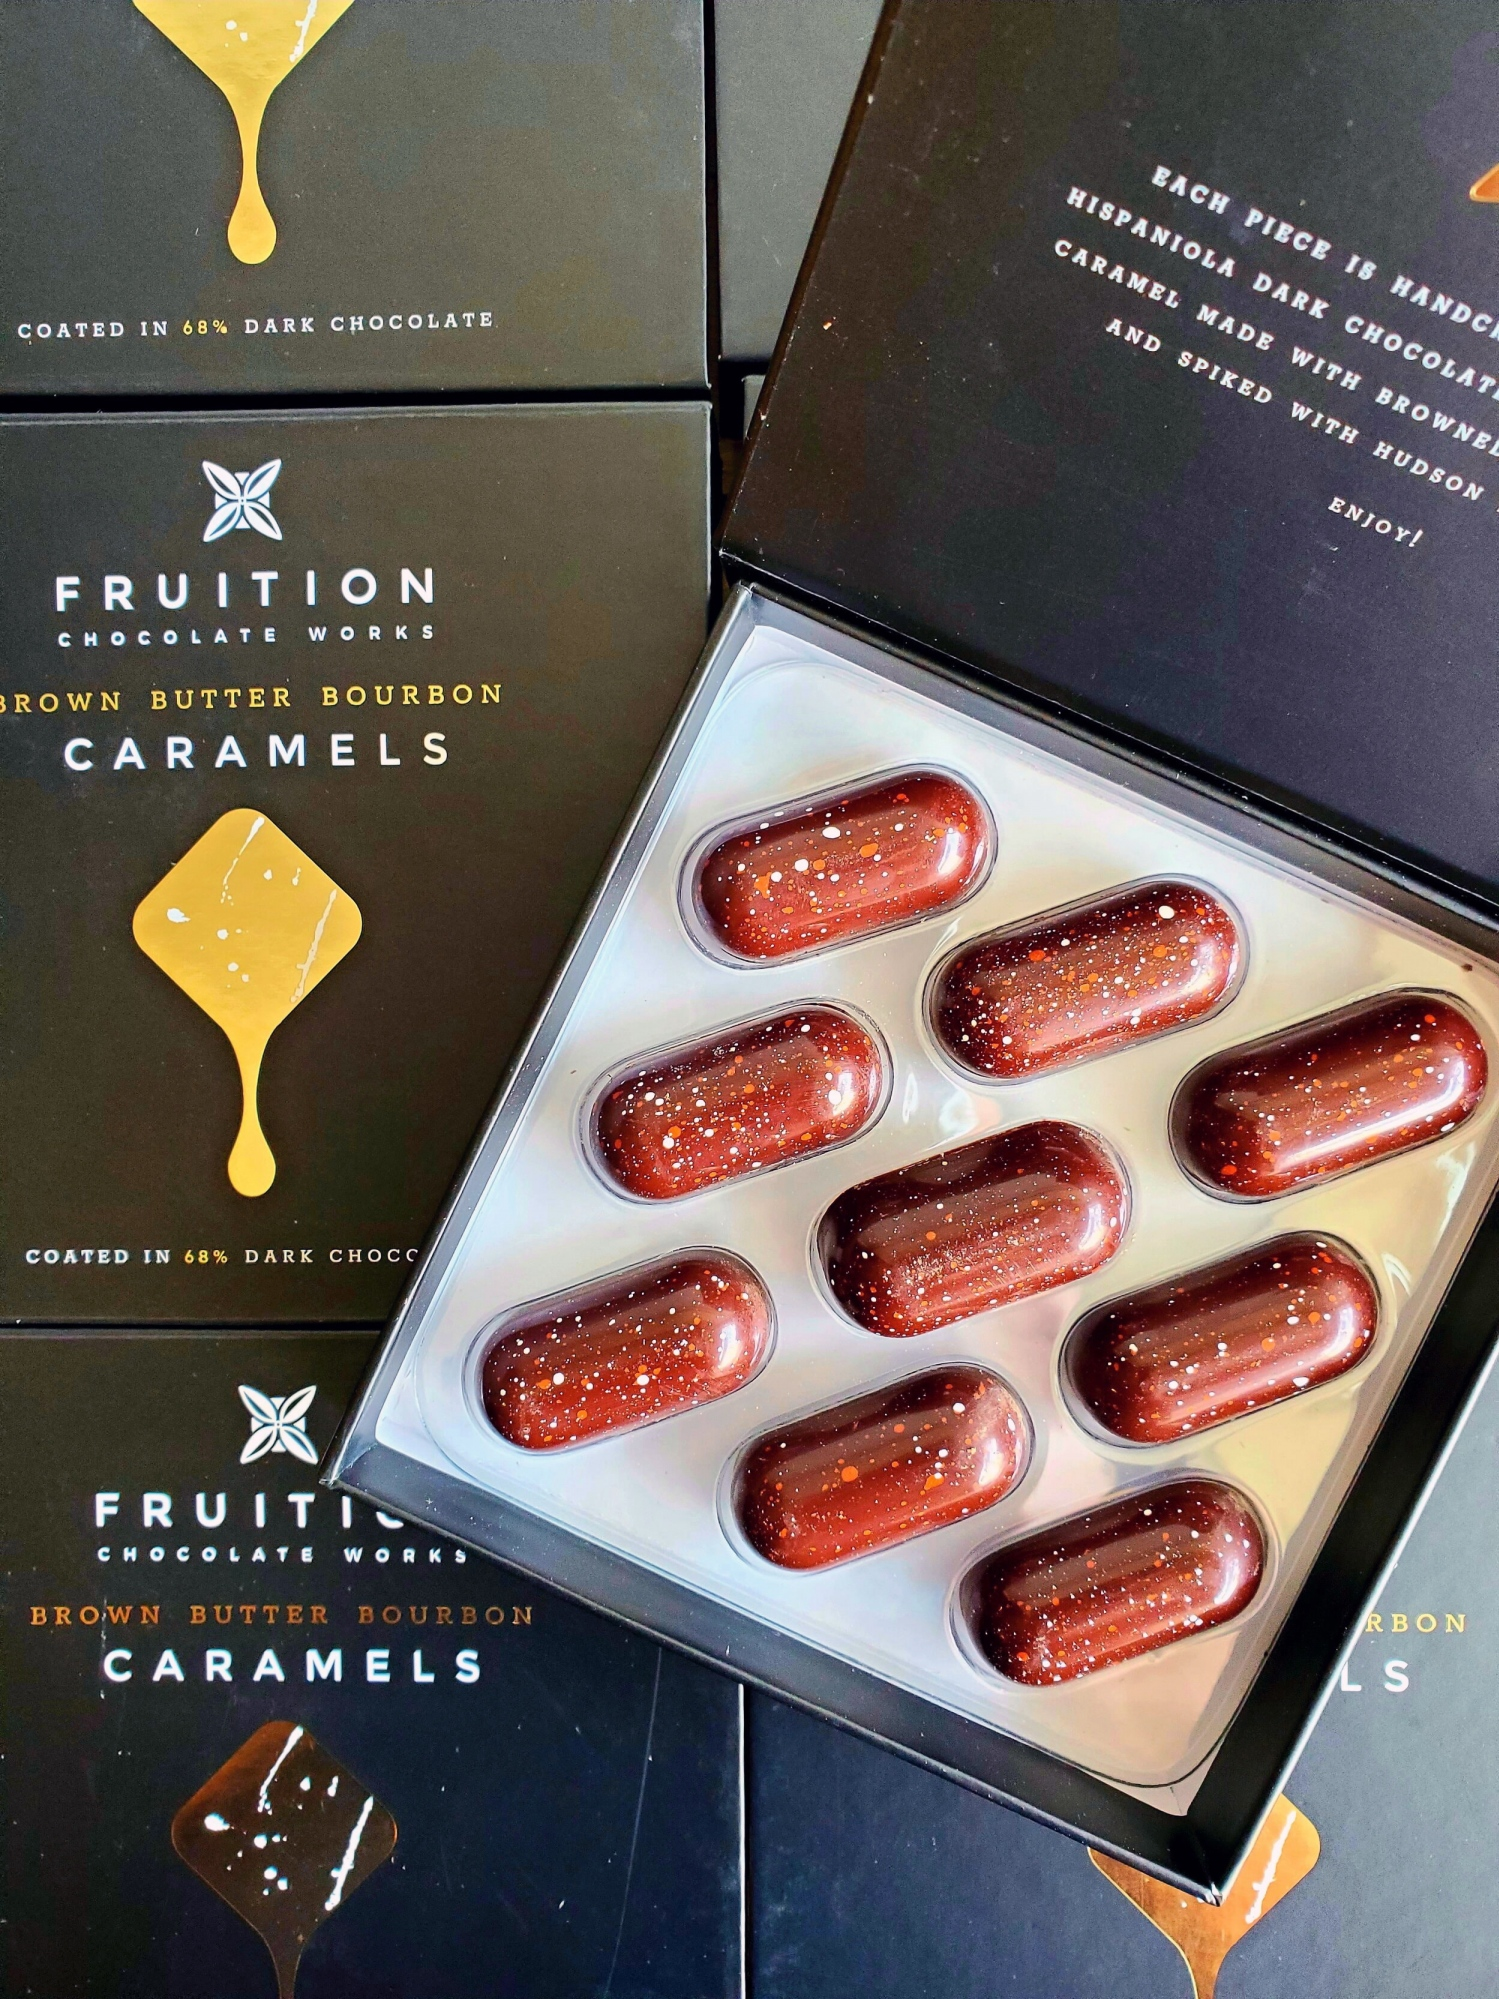 Brown Butter Bourbon Caramels from Fruition Chocolate Works